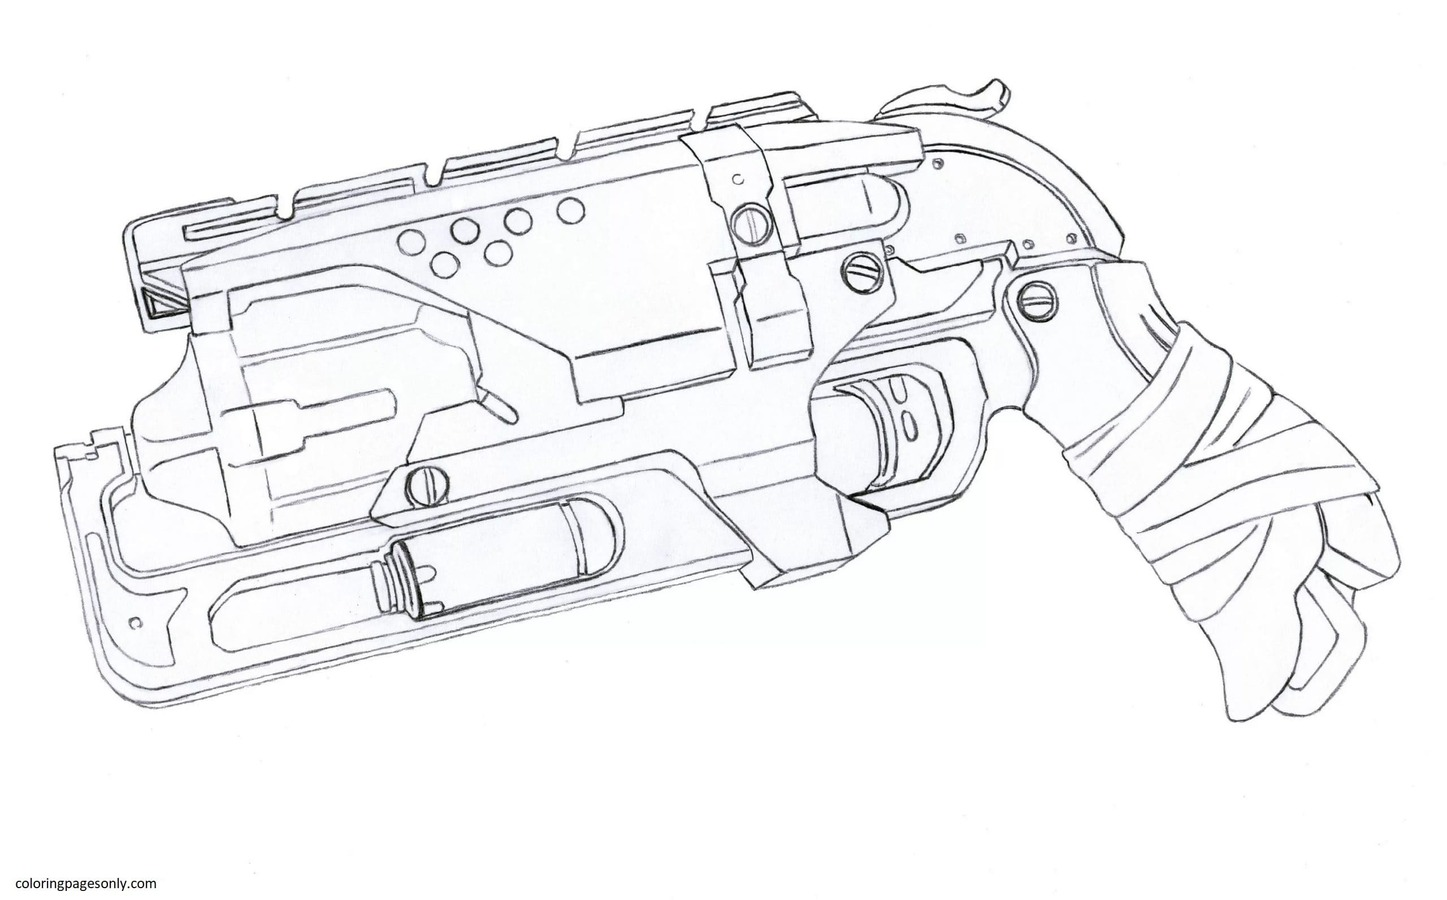 Nerf Springer Coloring Page